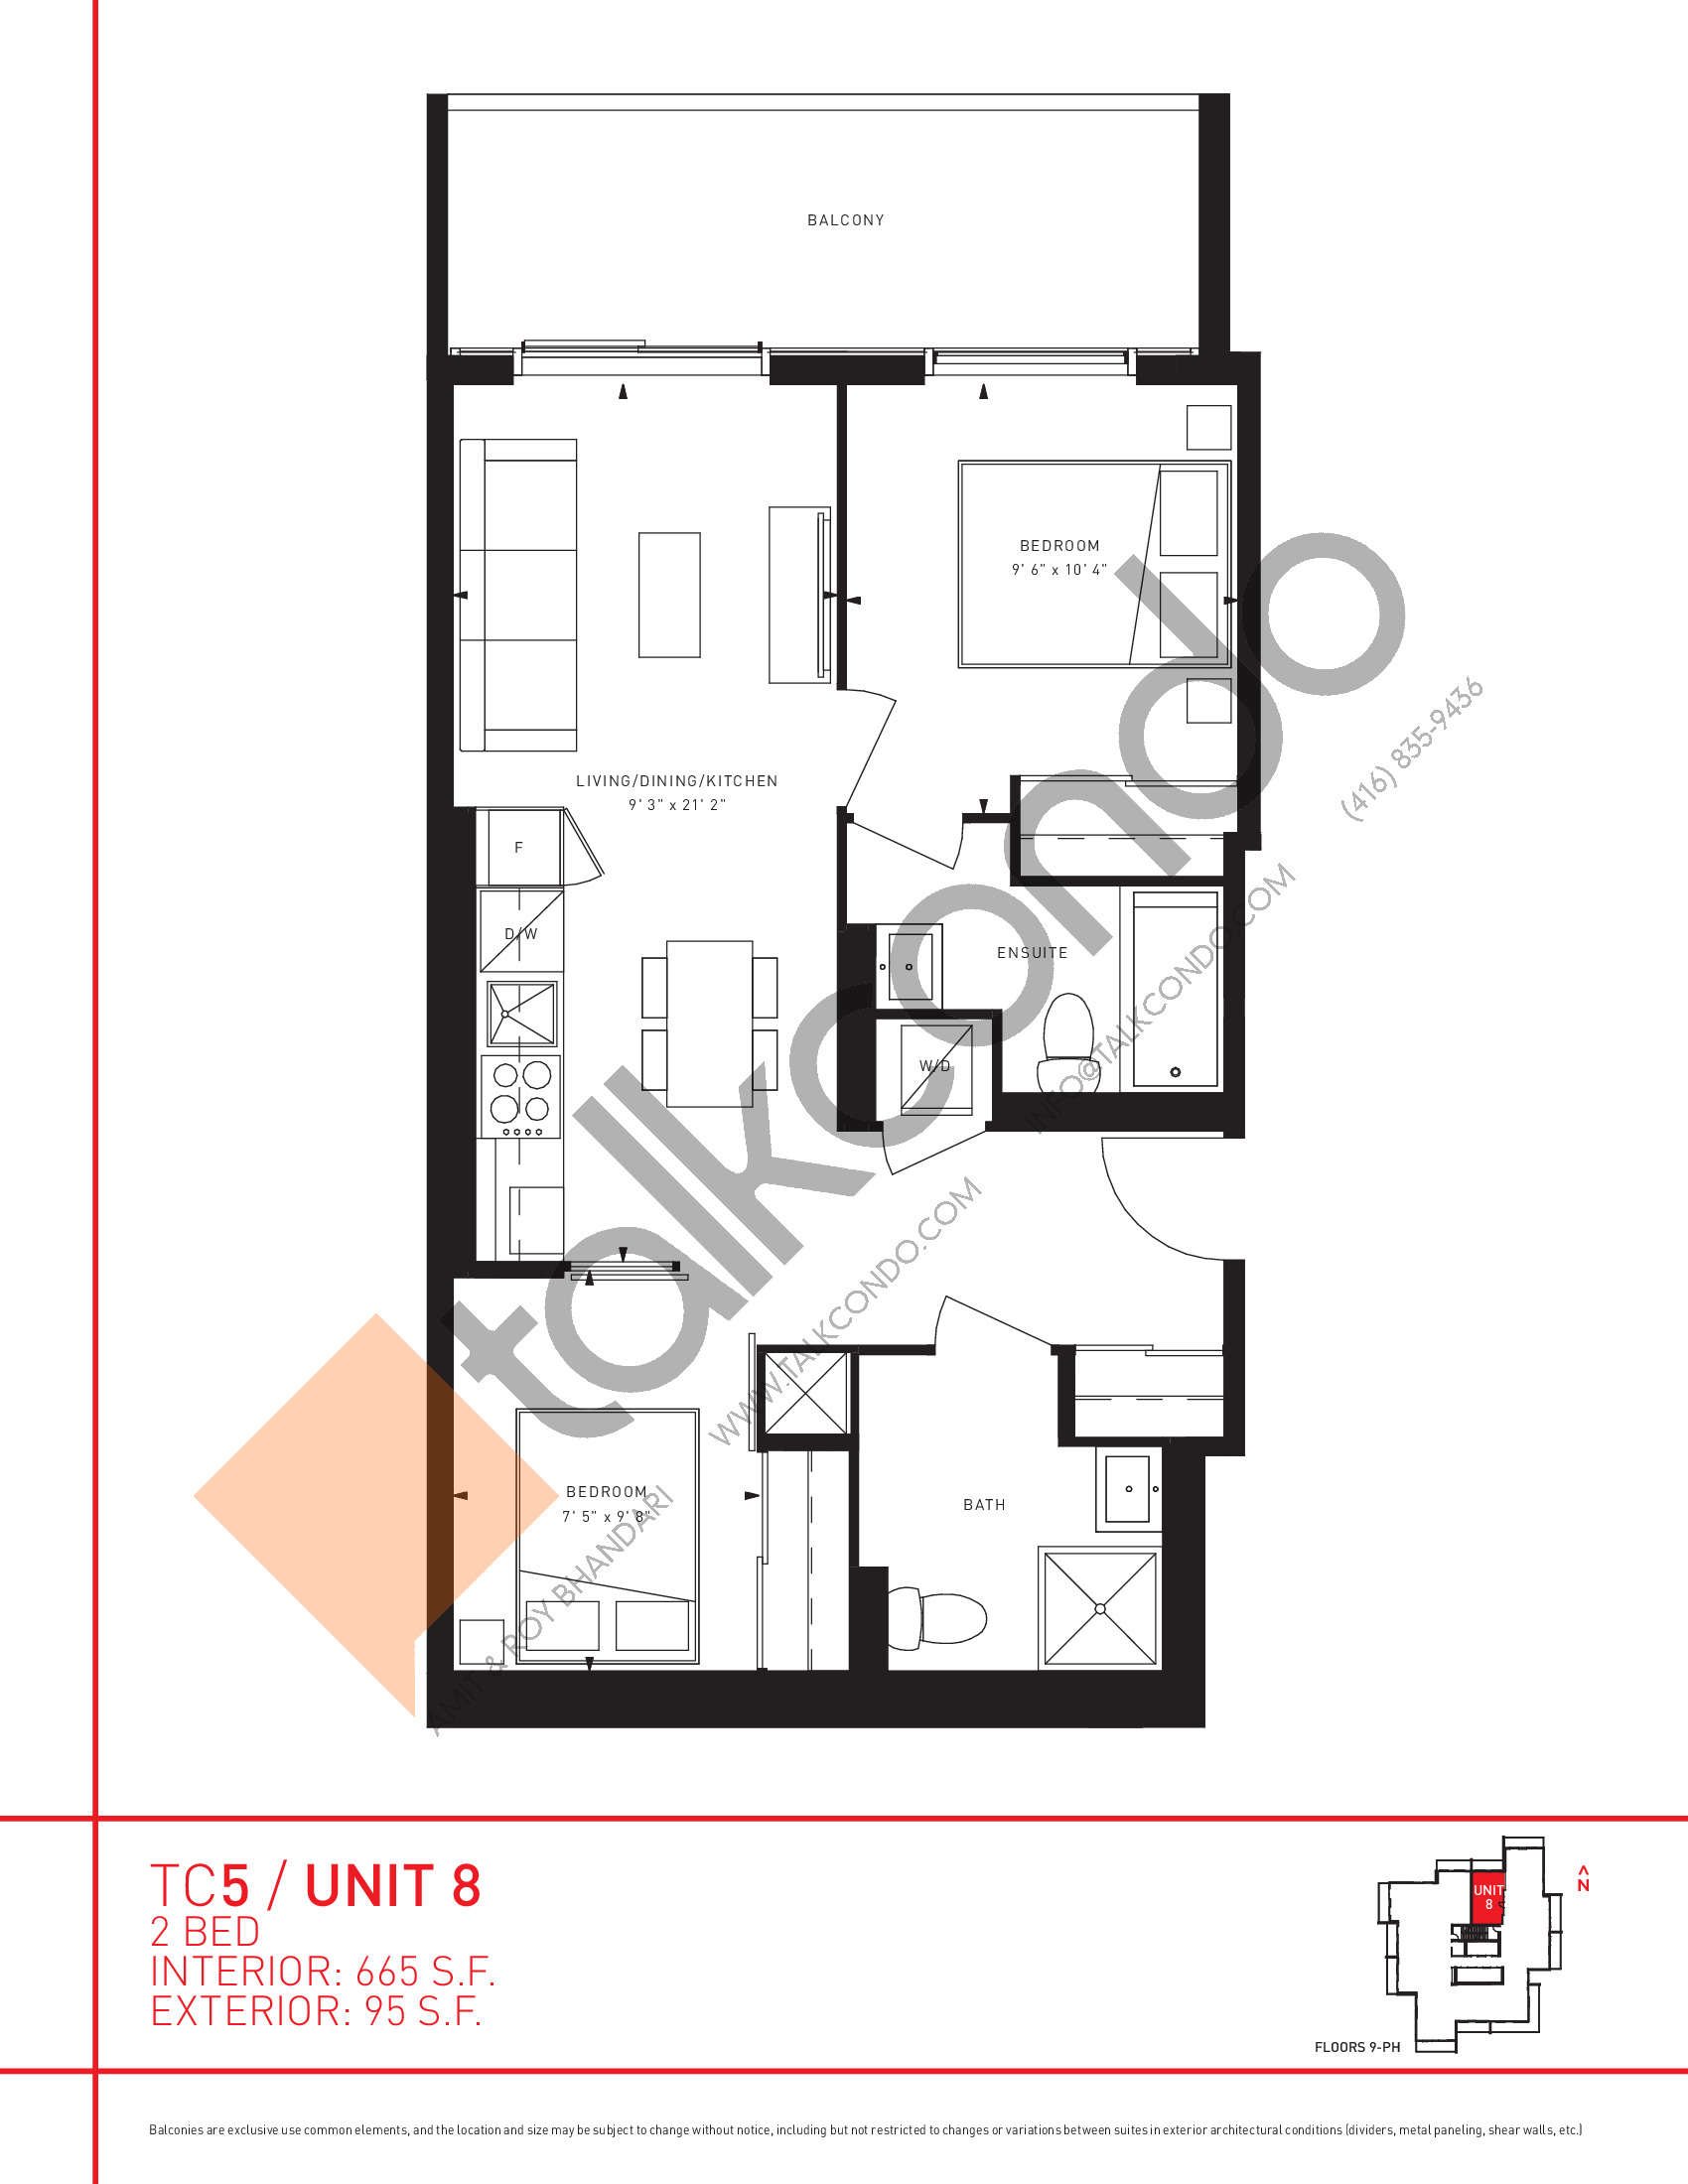 Unit 8 Floor Plan at Transit City 5 (TC5) Condos - 665 sq.ft